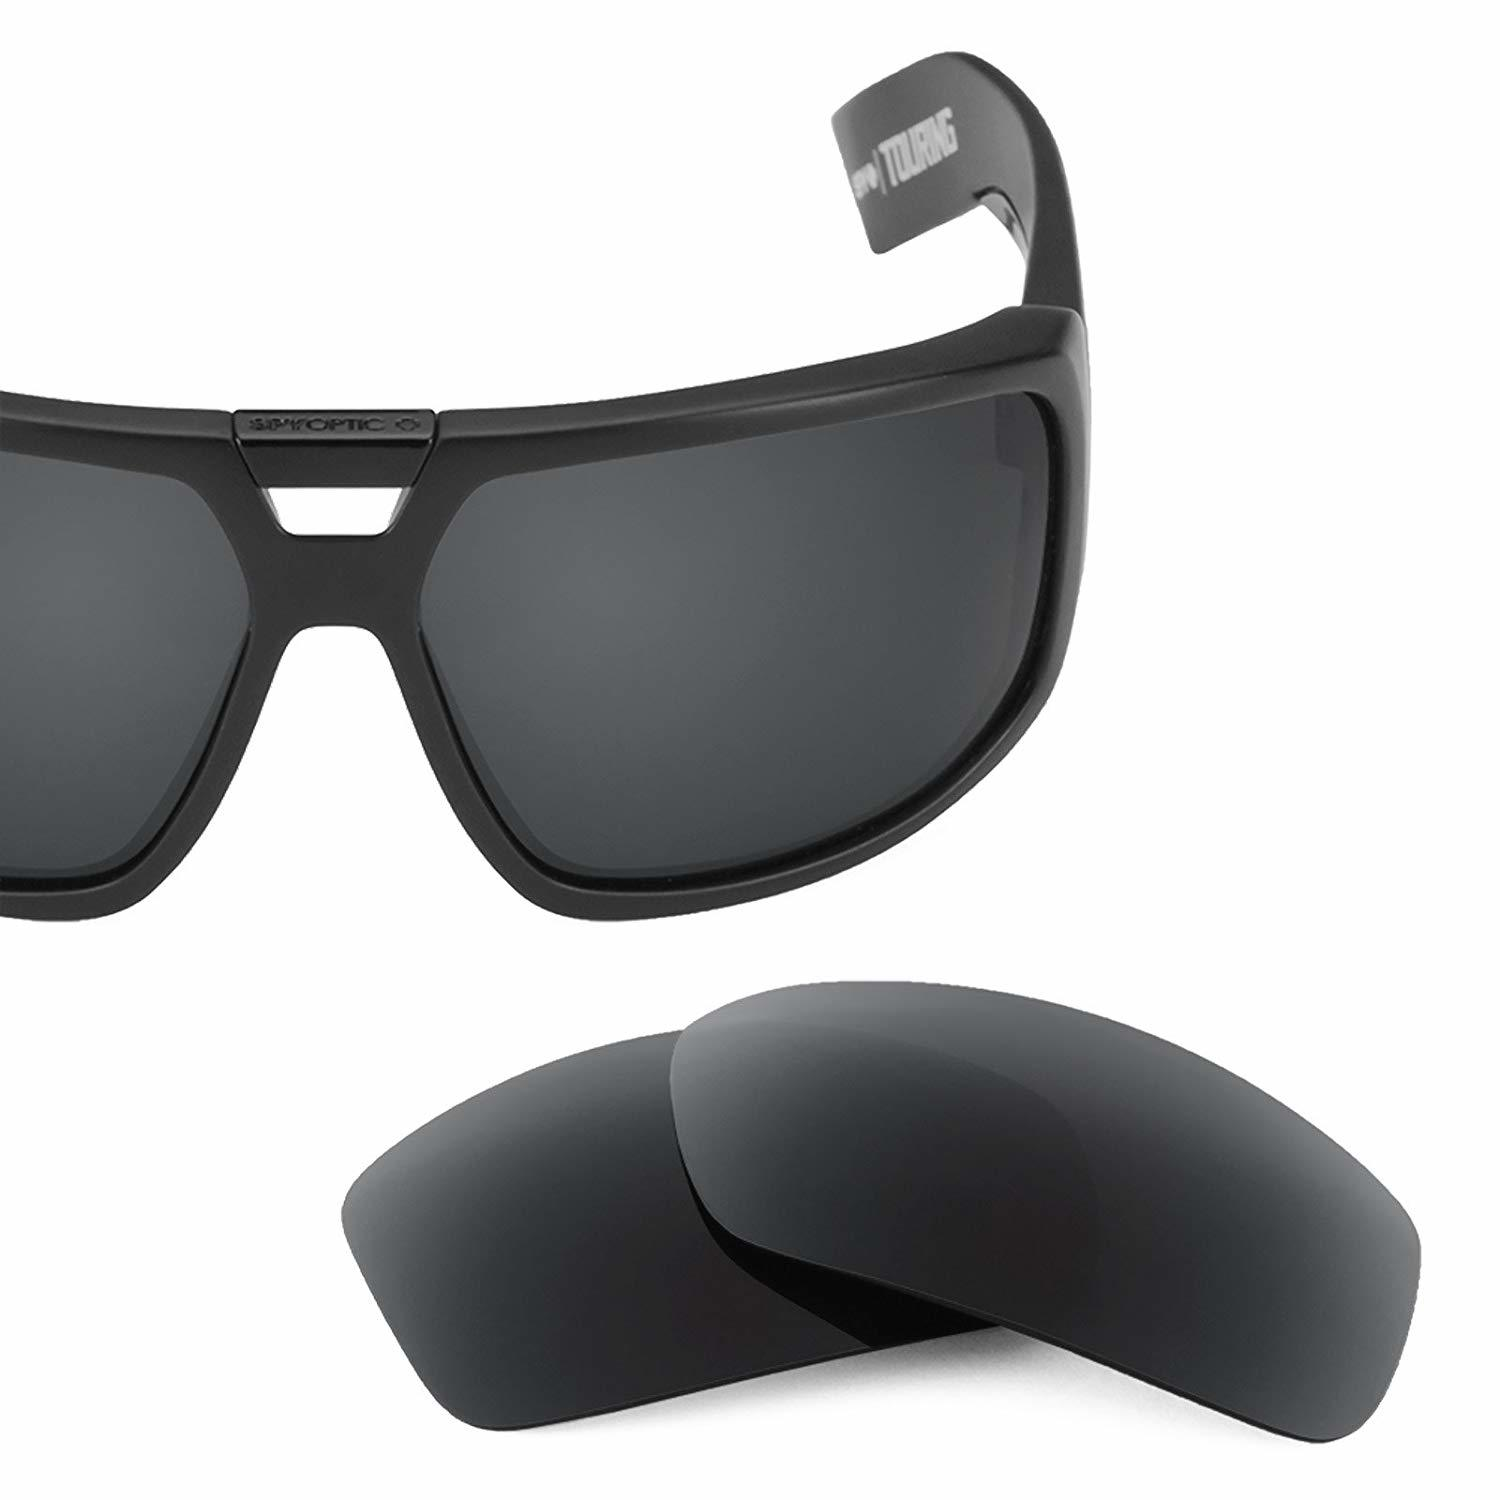 a2f650f285 Replacement Lenses for Spy Optic Touring and 22 similar items. 61pymagypwl.  ul1500